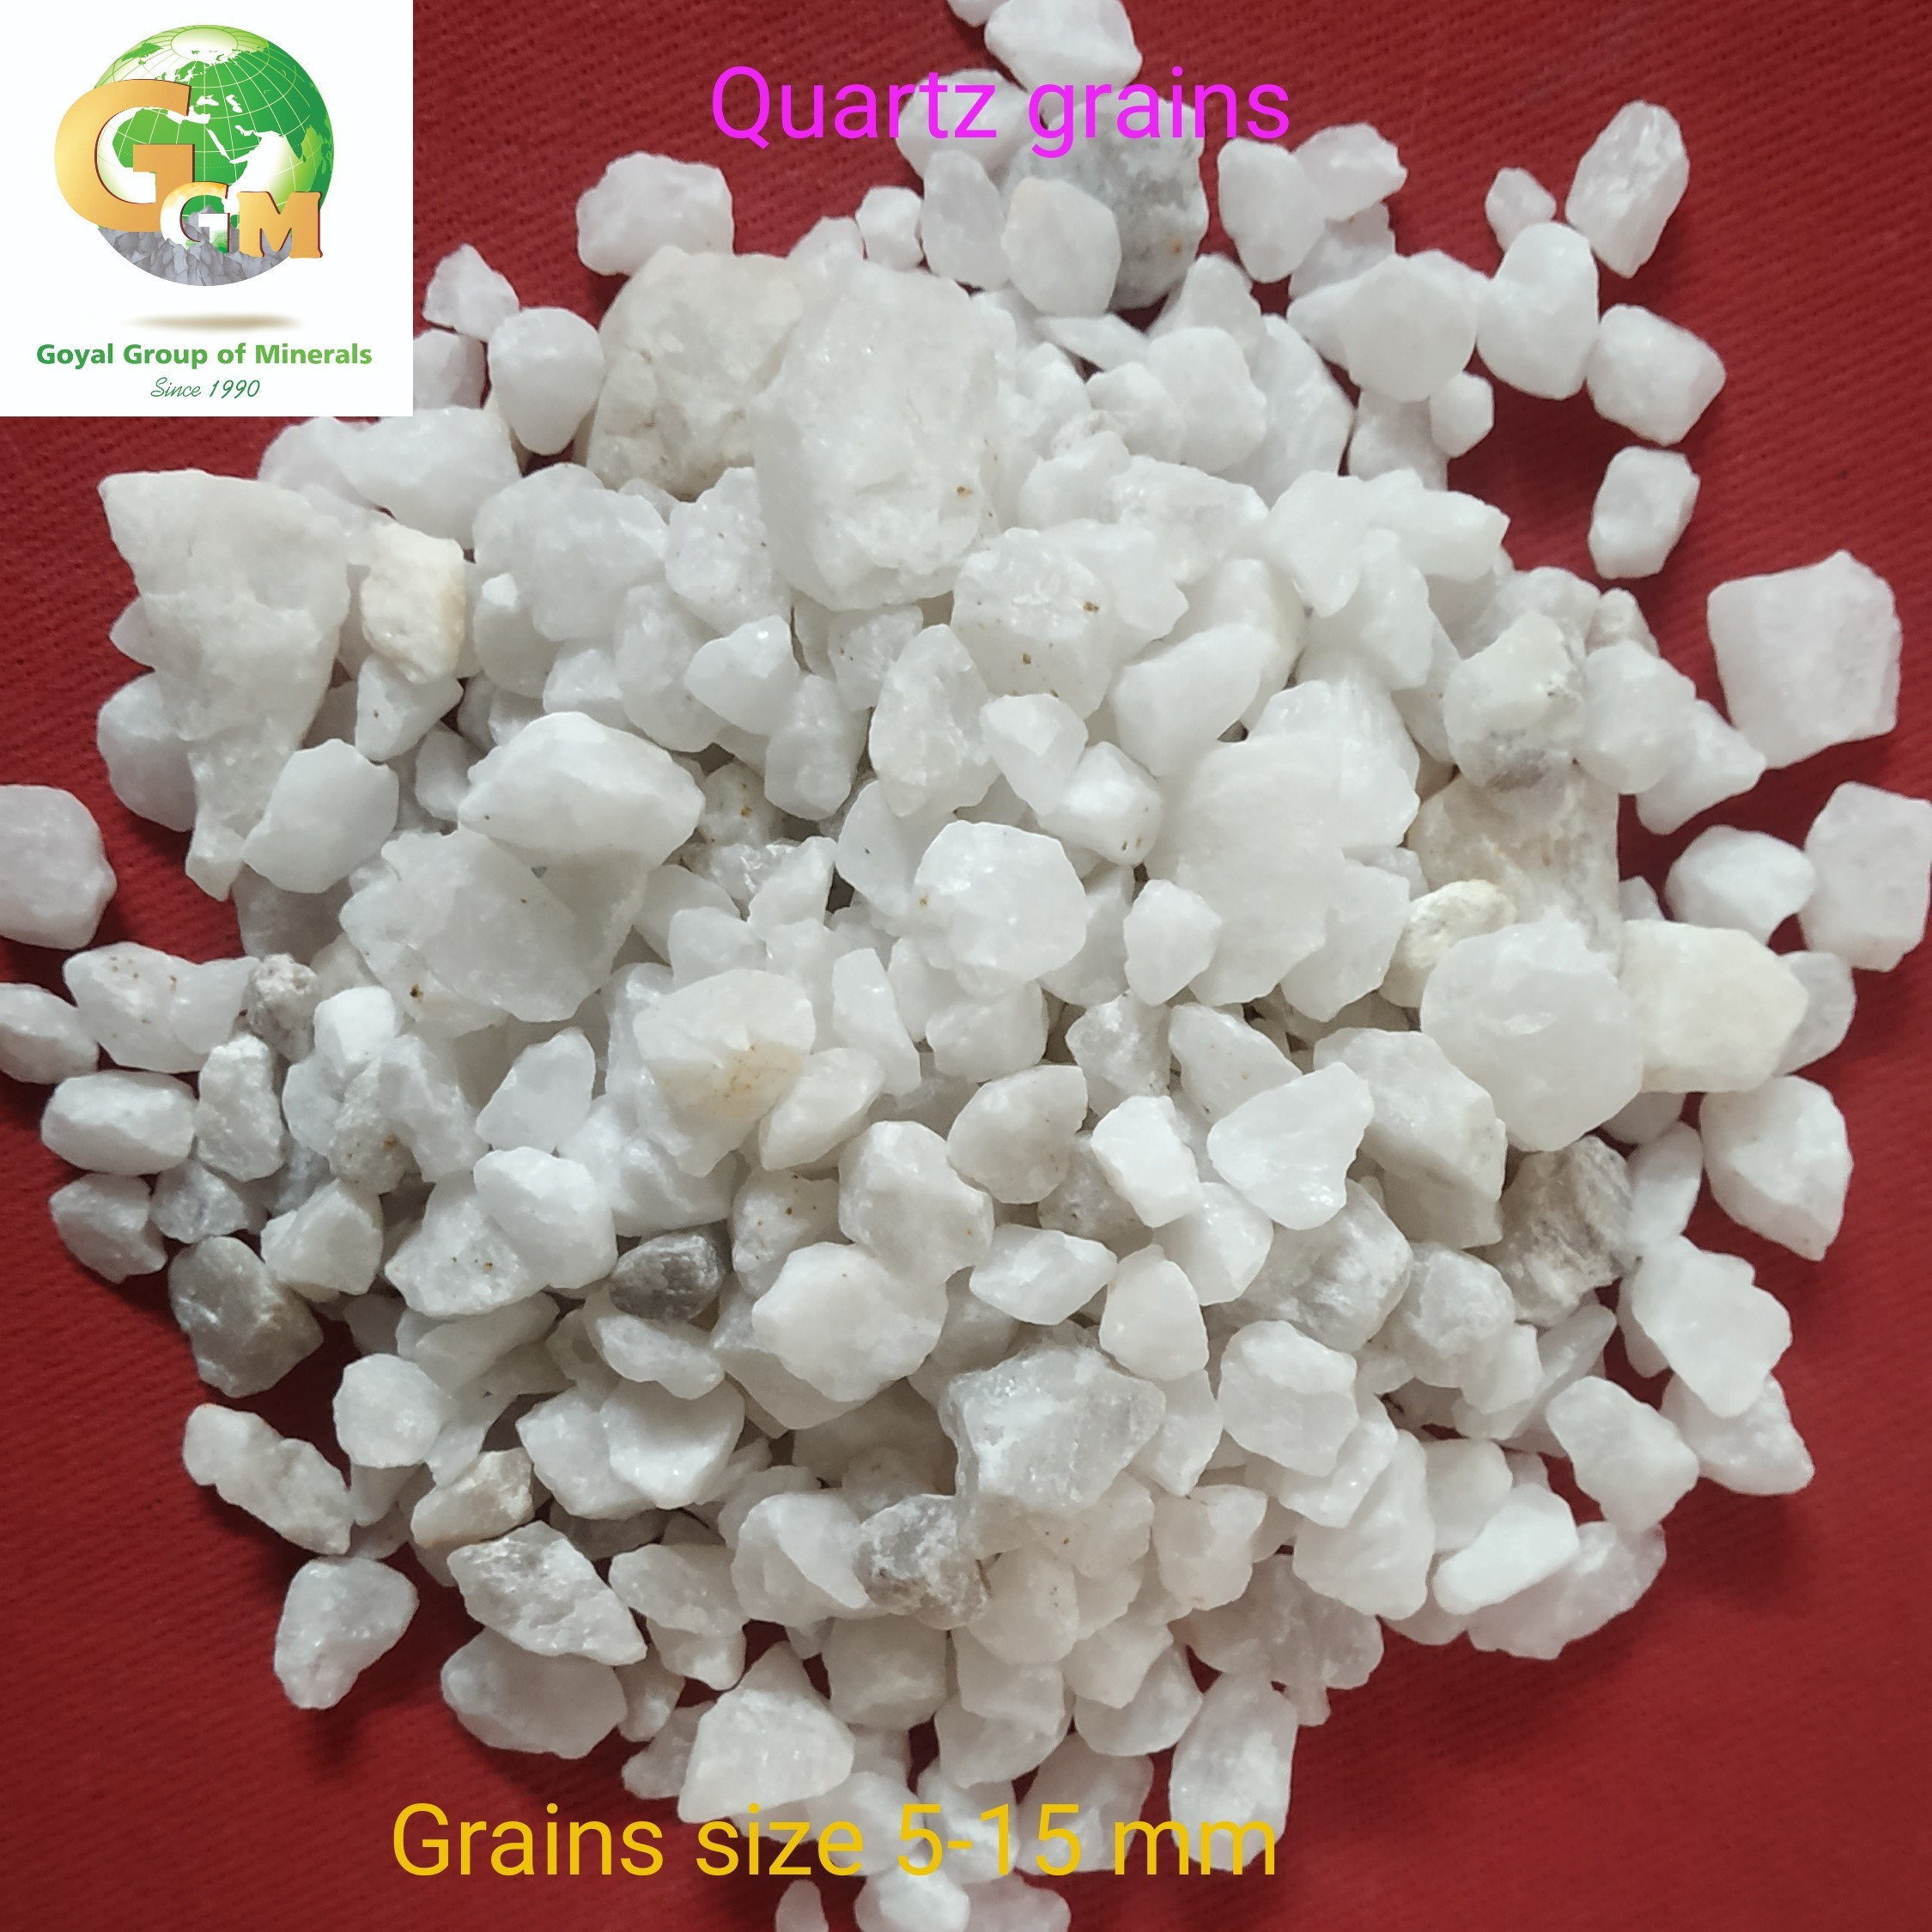 10 mm Large Size Quartz Grain